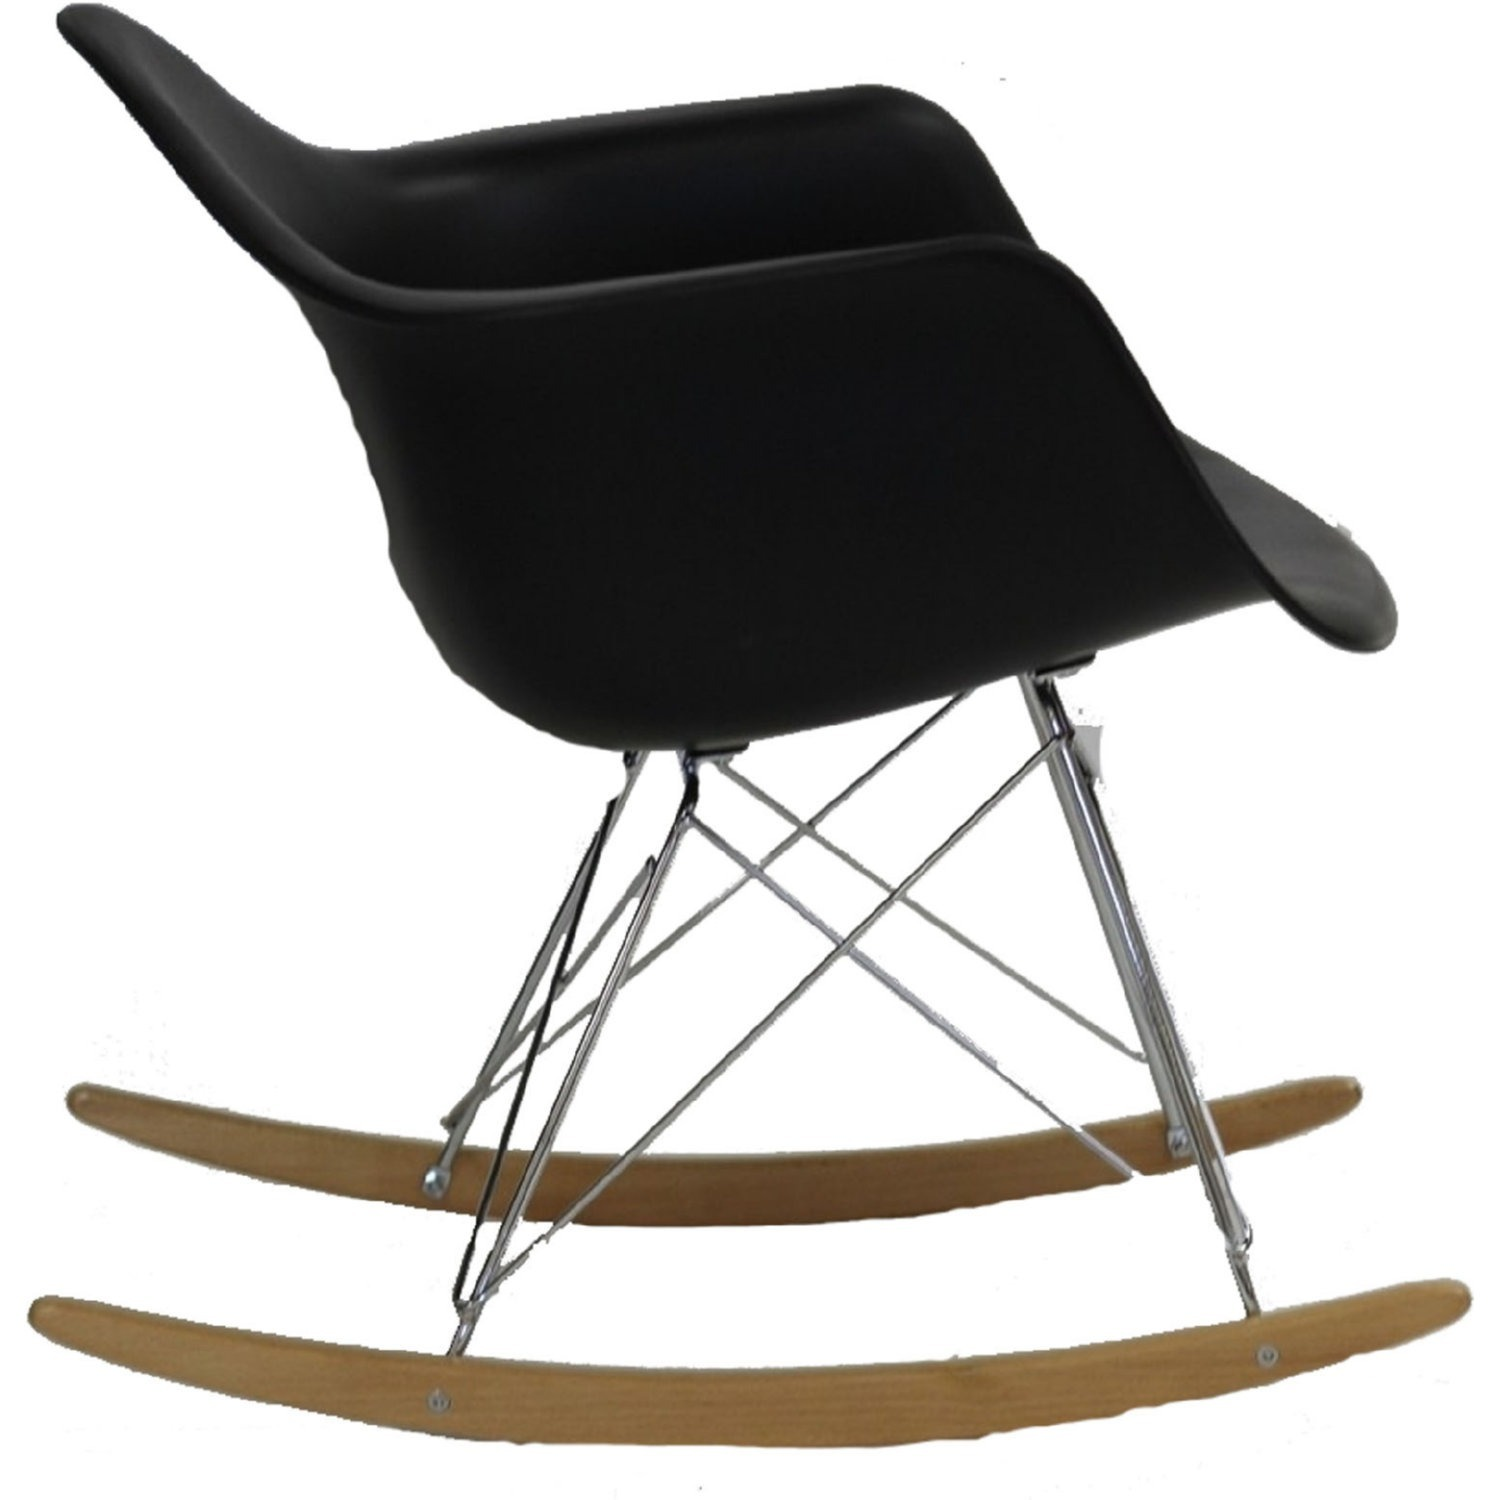 Retro Modern Lounge Chair In Black W/ Chrome Base - image-2